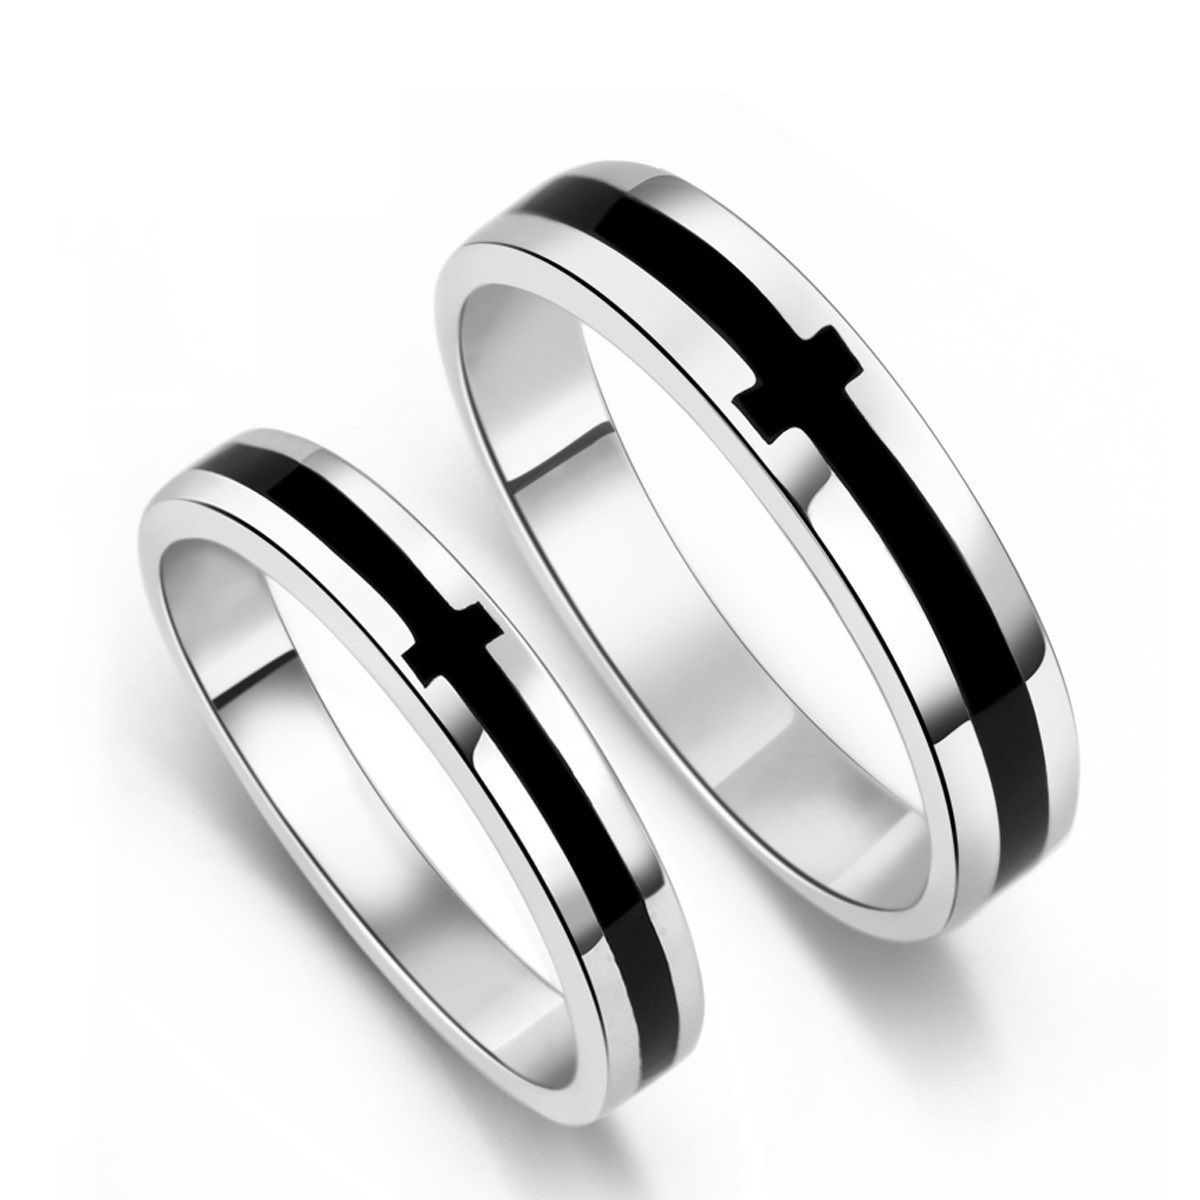 couples wedding bands Black Onyx S Sterling Silver Mens Ladies Couple Promise Ring Wedding Bands Matching Set Best